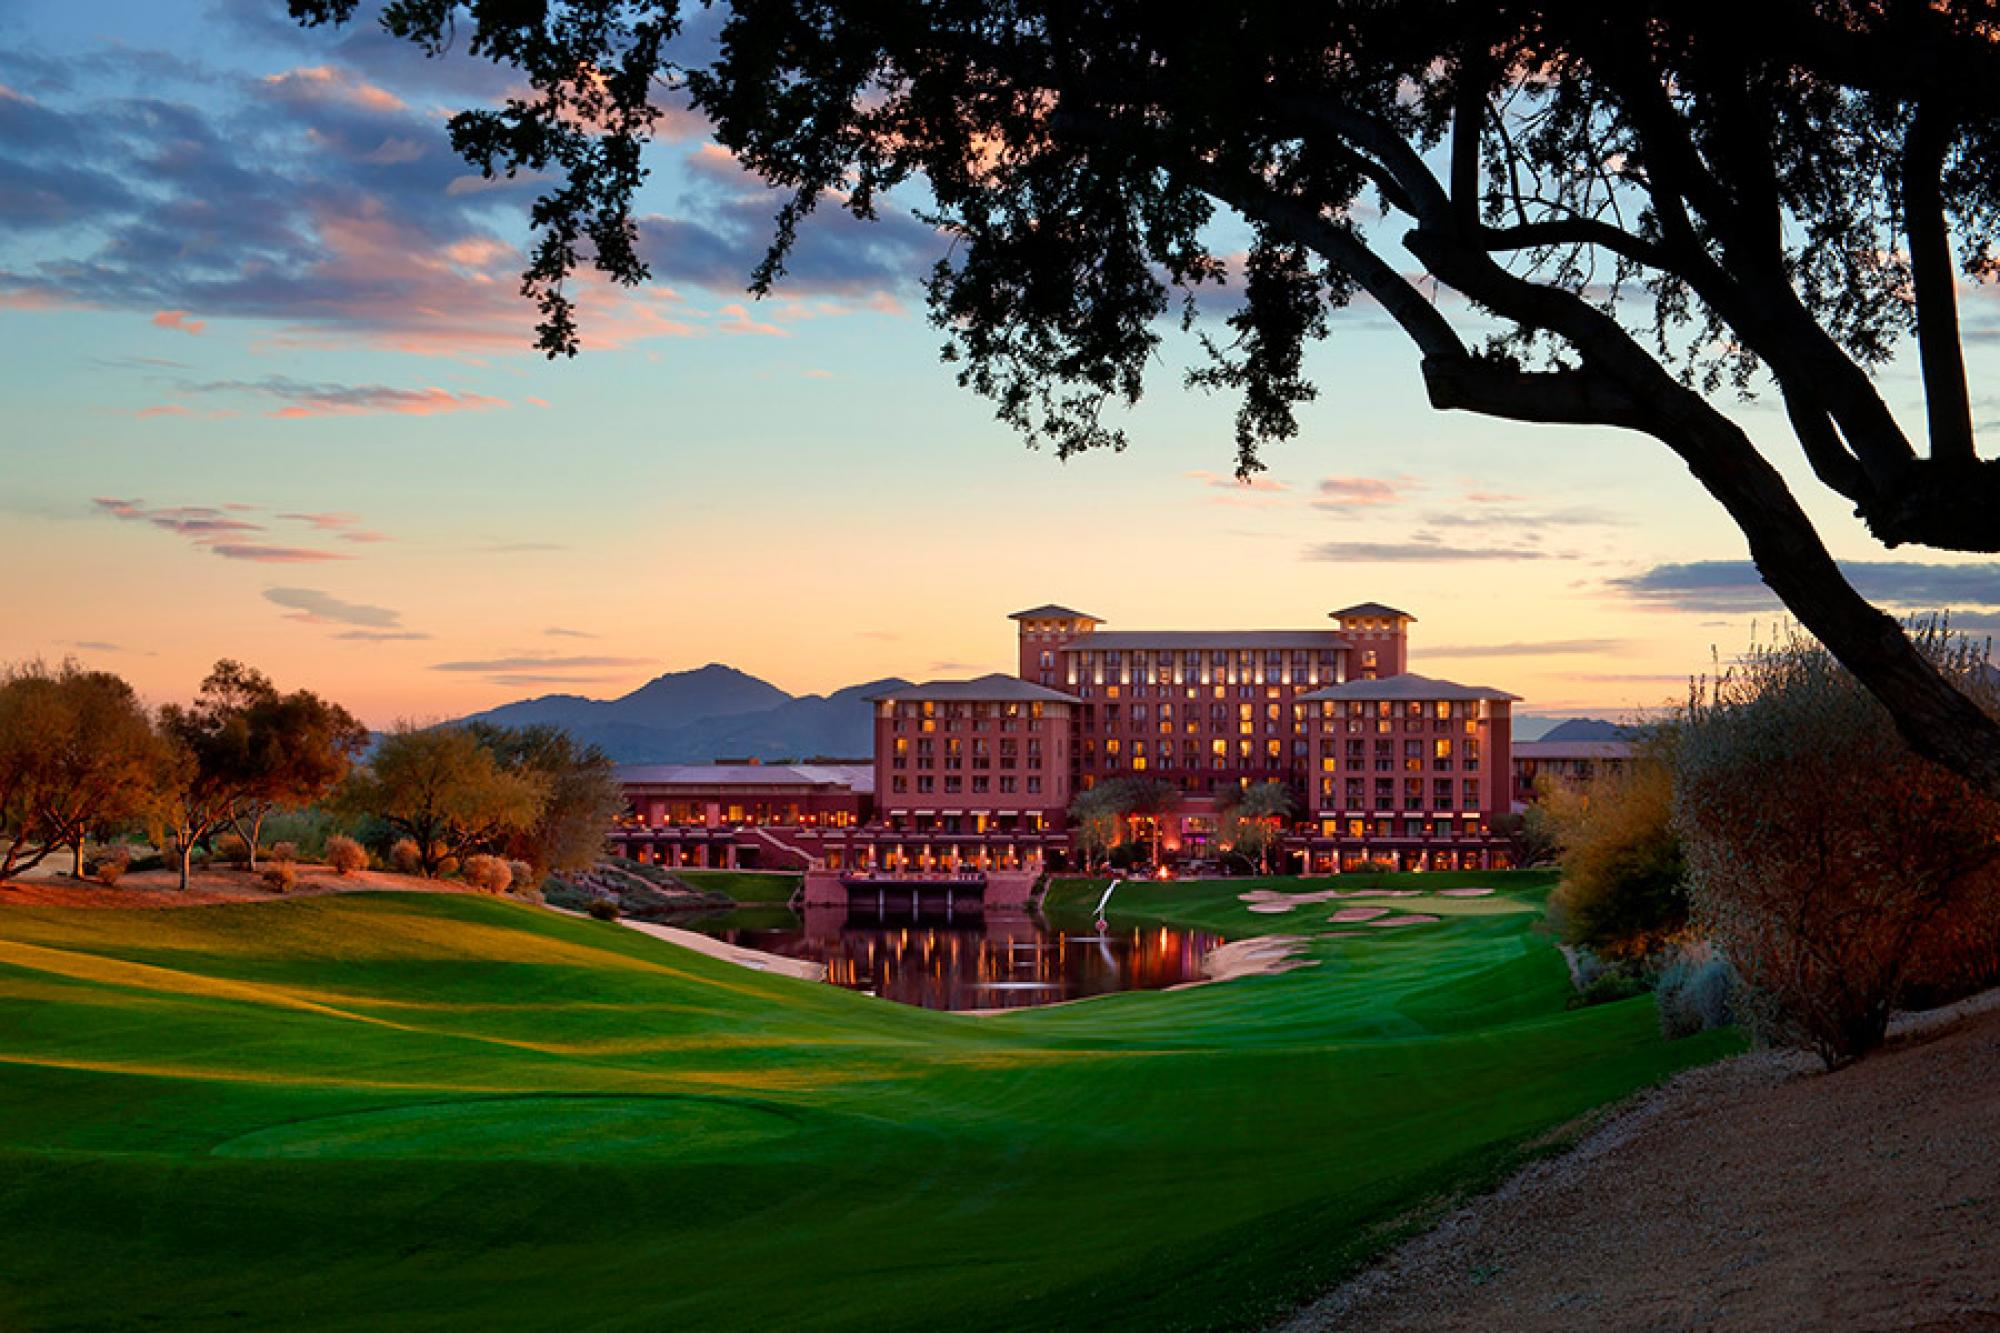 Westin Kierland Resort Fairway Sunset